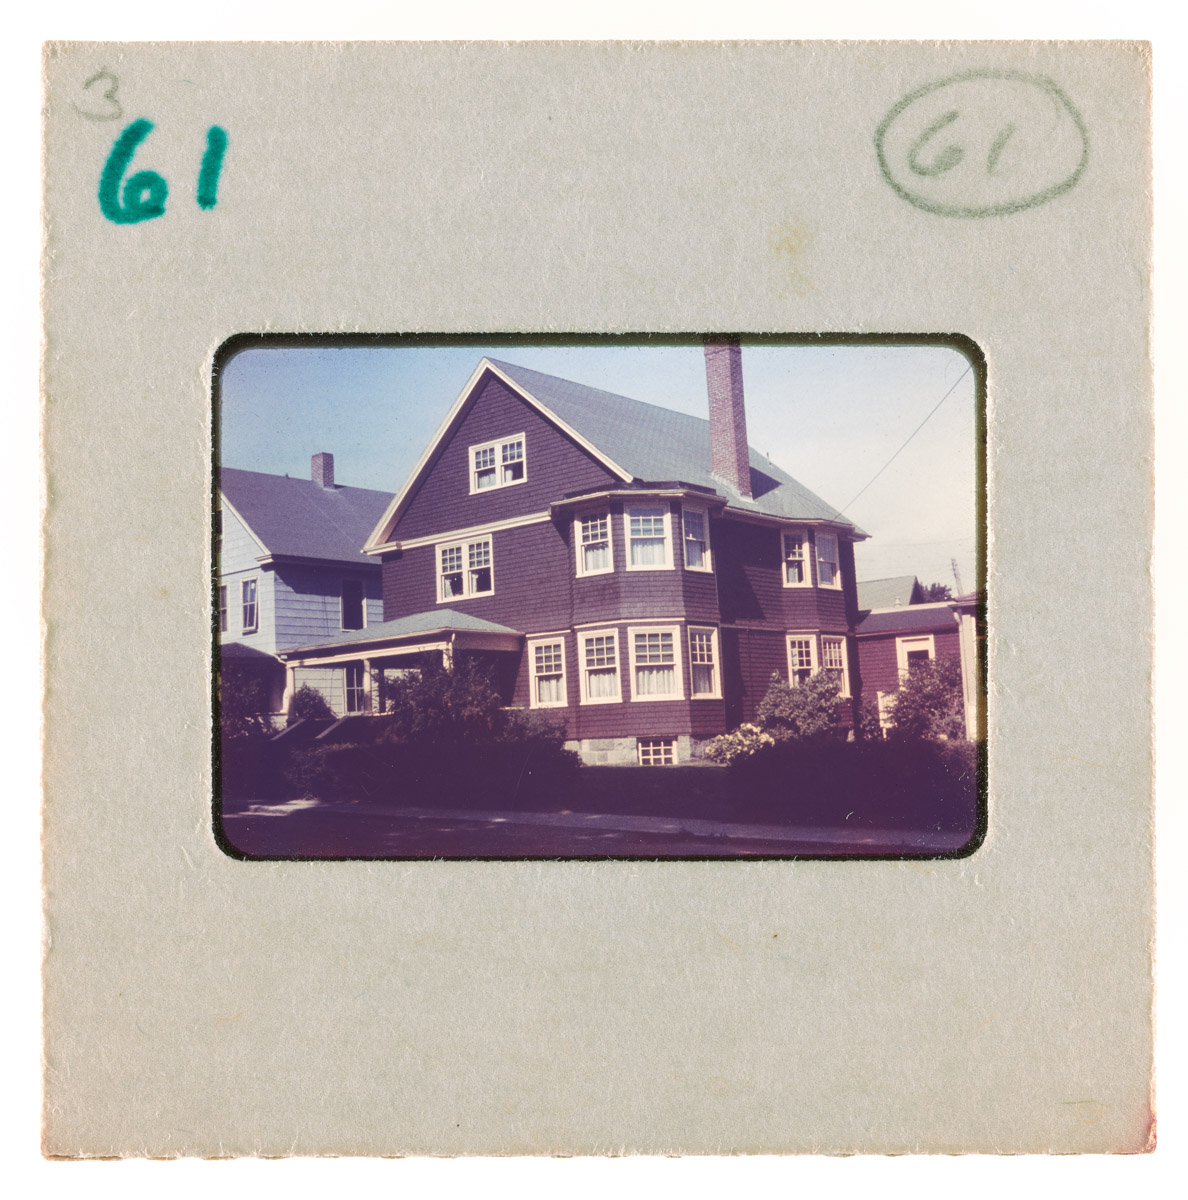 Large Brown House with Porch Slide, 1961-1982